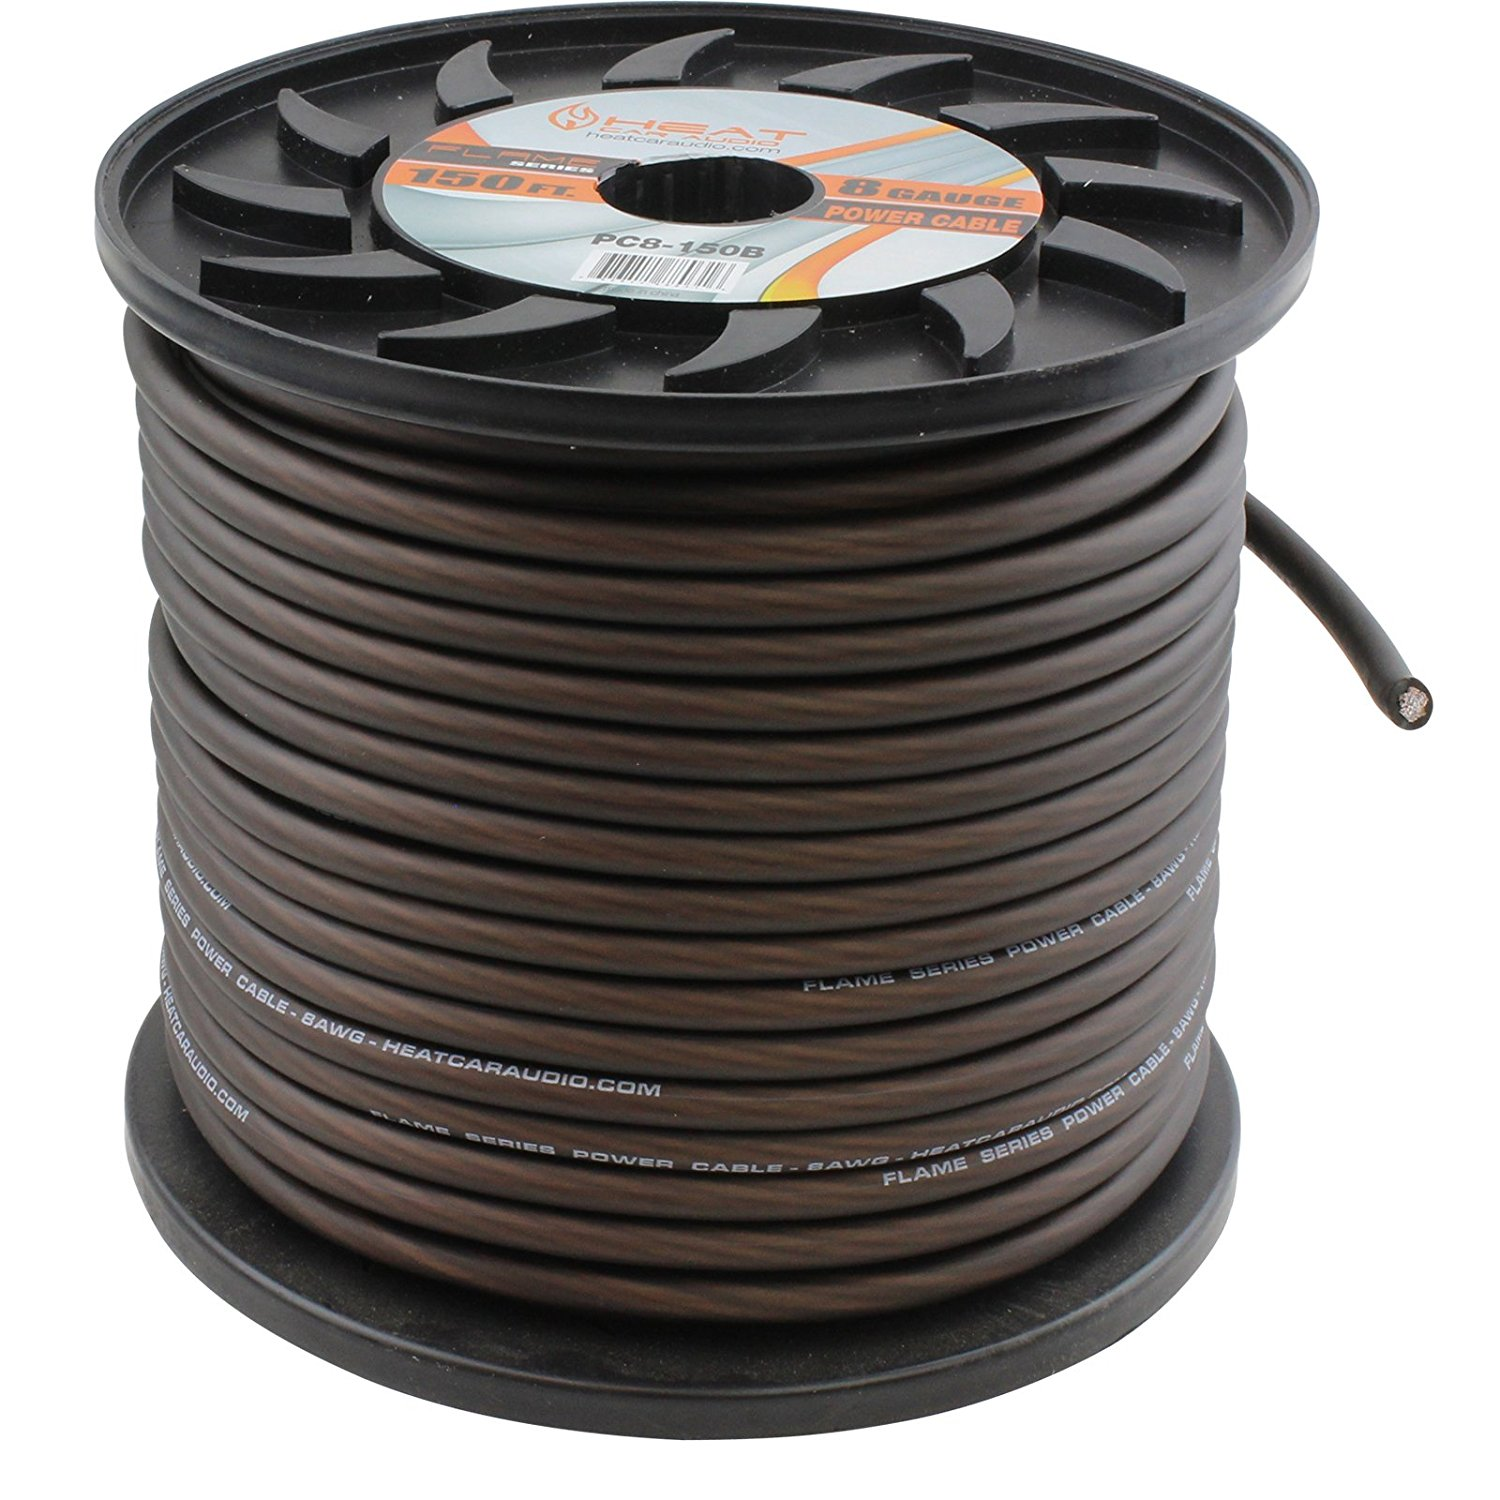 8 Gauge AWG 150 Ft Foot Car Amp Power Ground Wire Cable Black PC8-150B